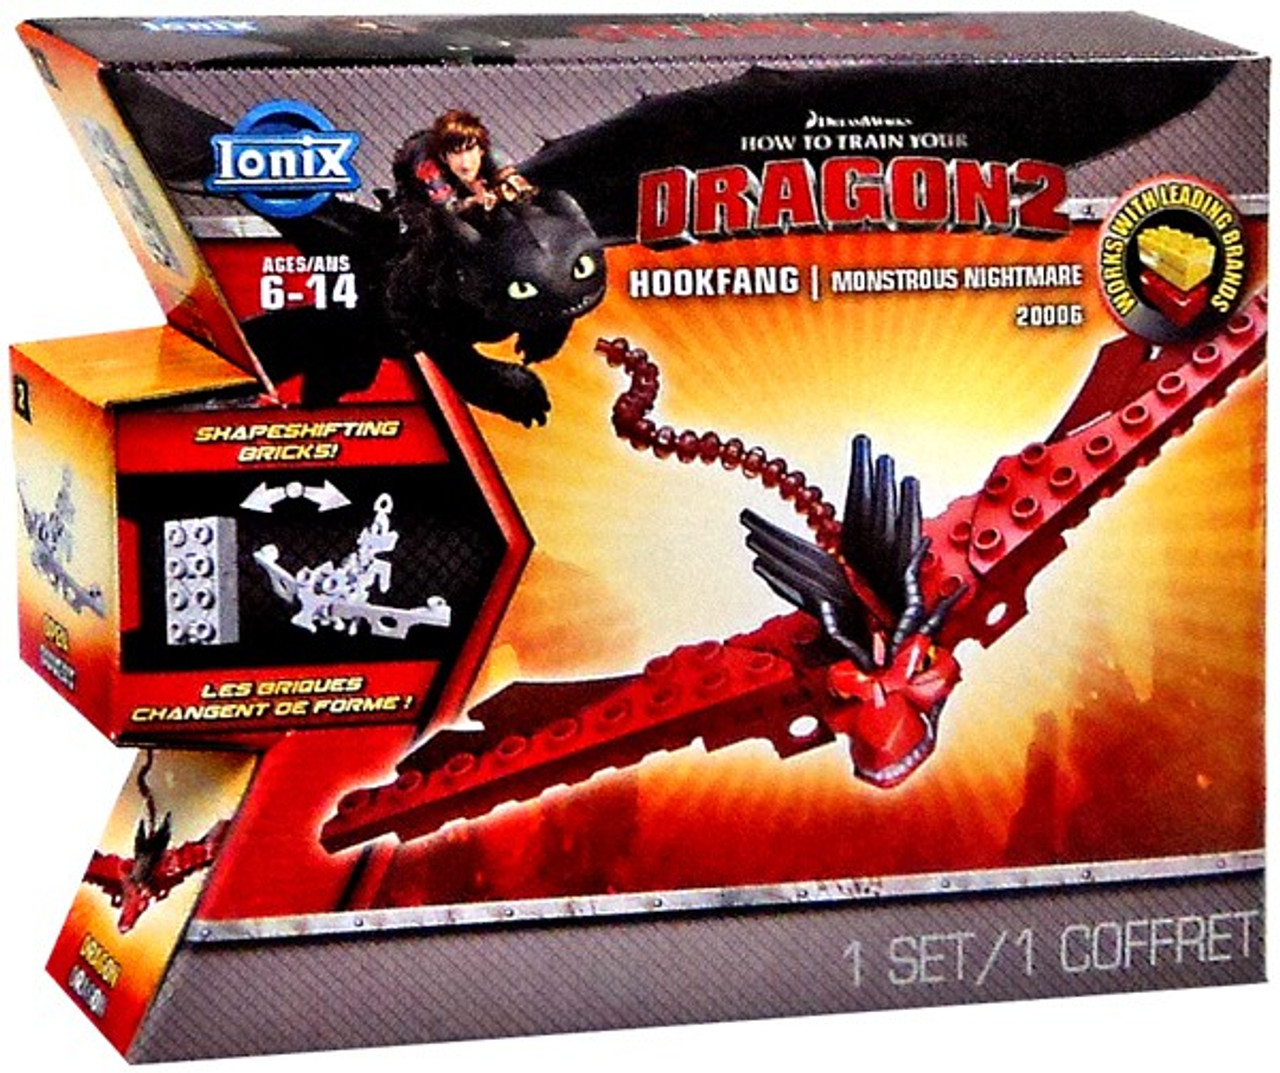 How to train your dragon 2 ionix hookfang monstrous nightmare how to train your dragon 2 ionix hookfang monstrous nightmare 20006 ccuart Images